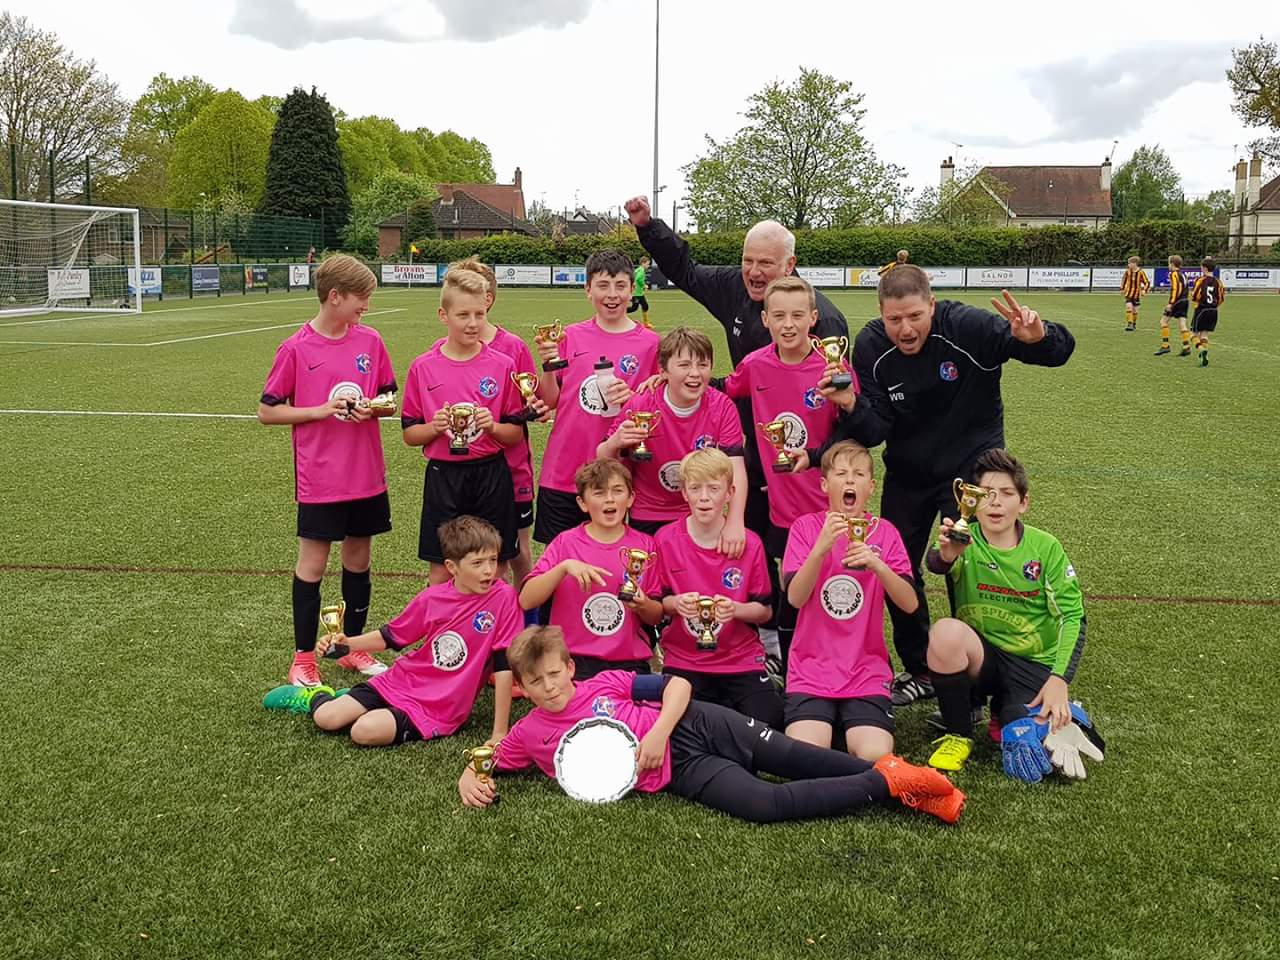 U12 Galaxy Divison 4 Champions and League Cup Winners